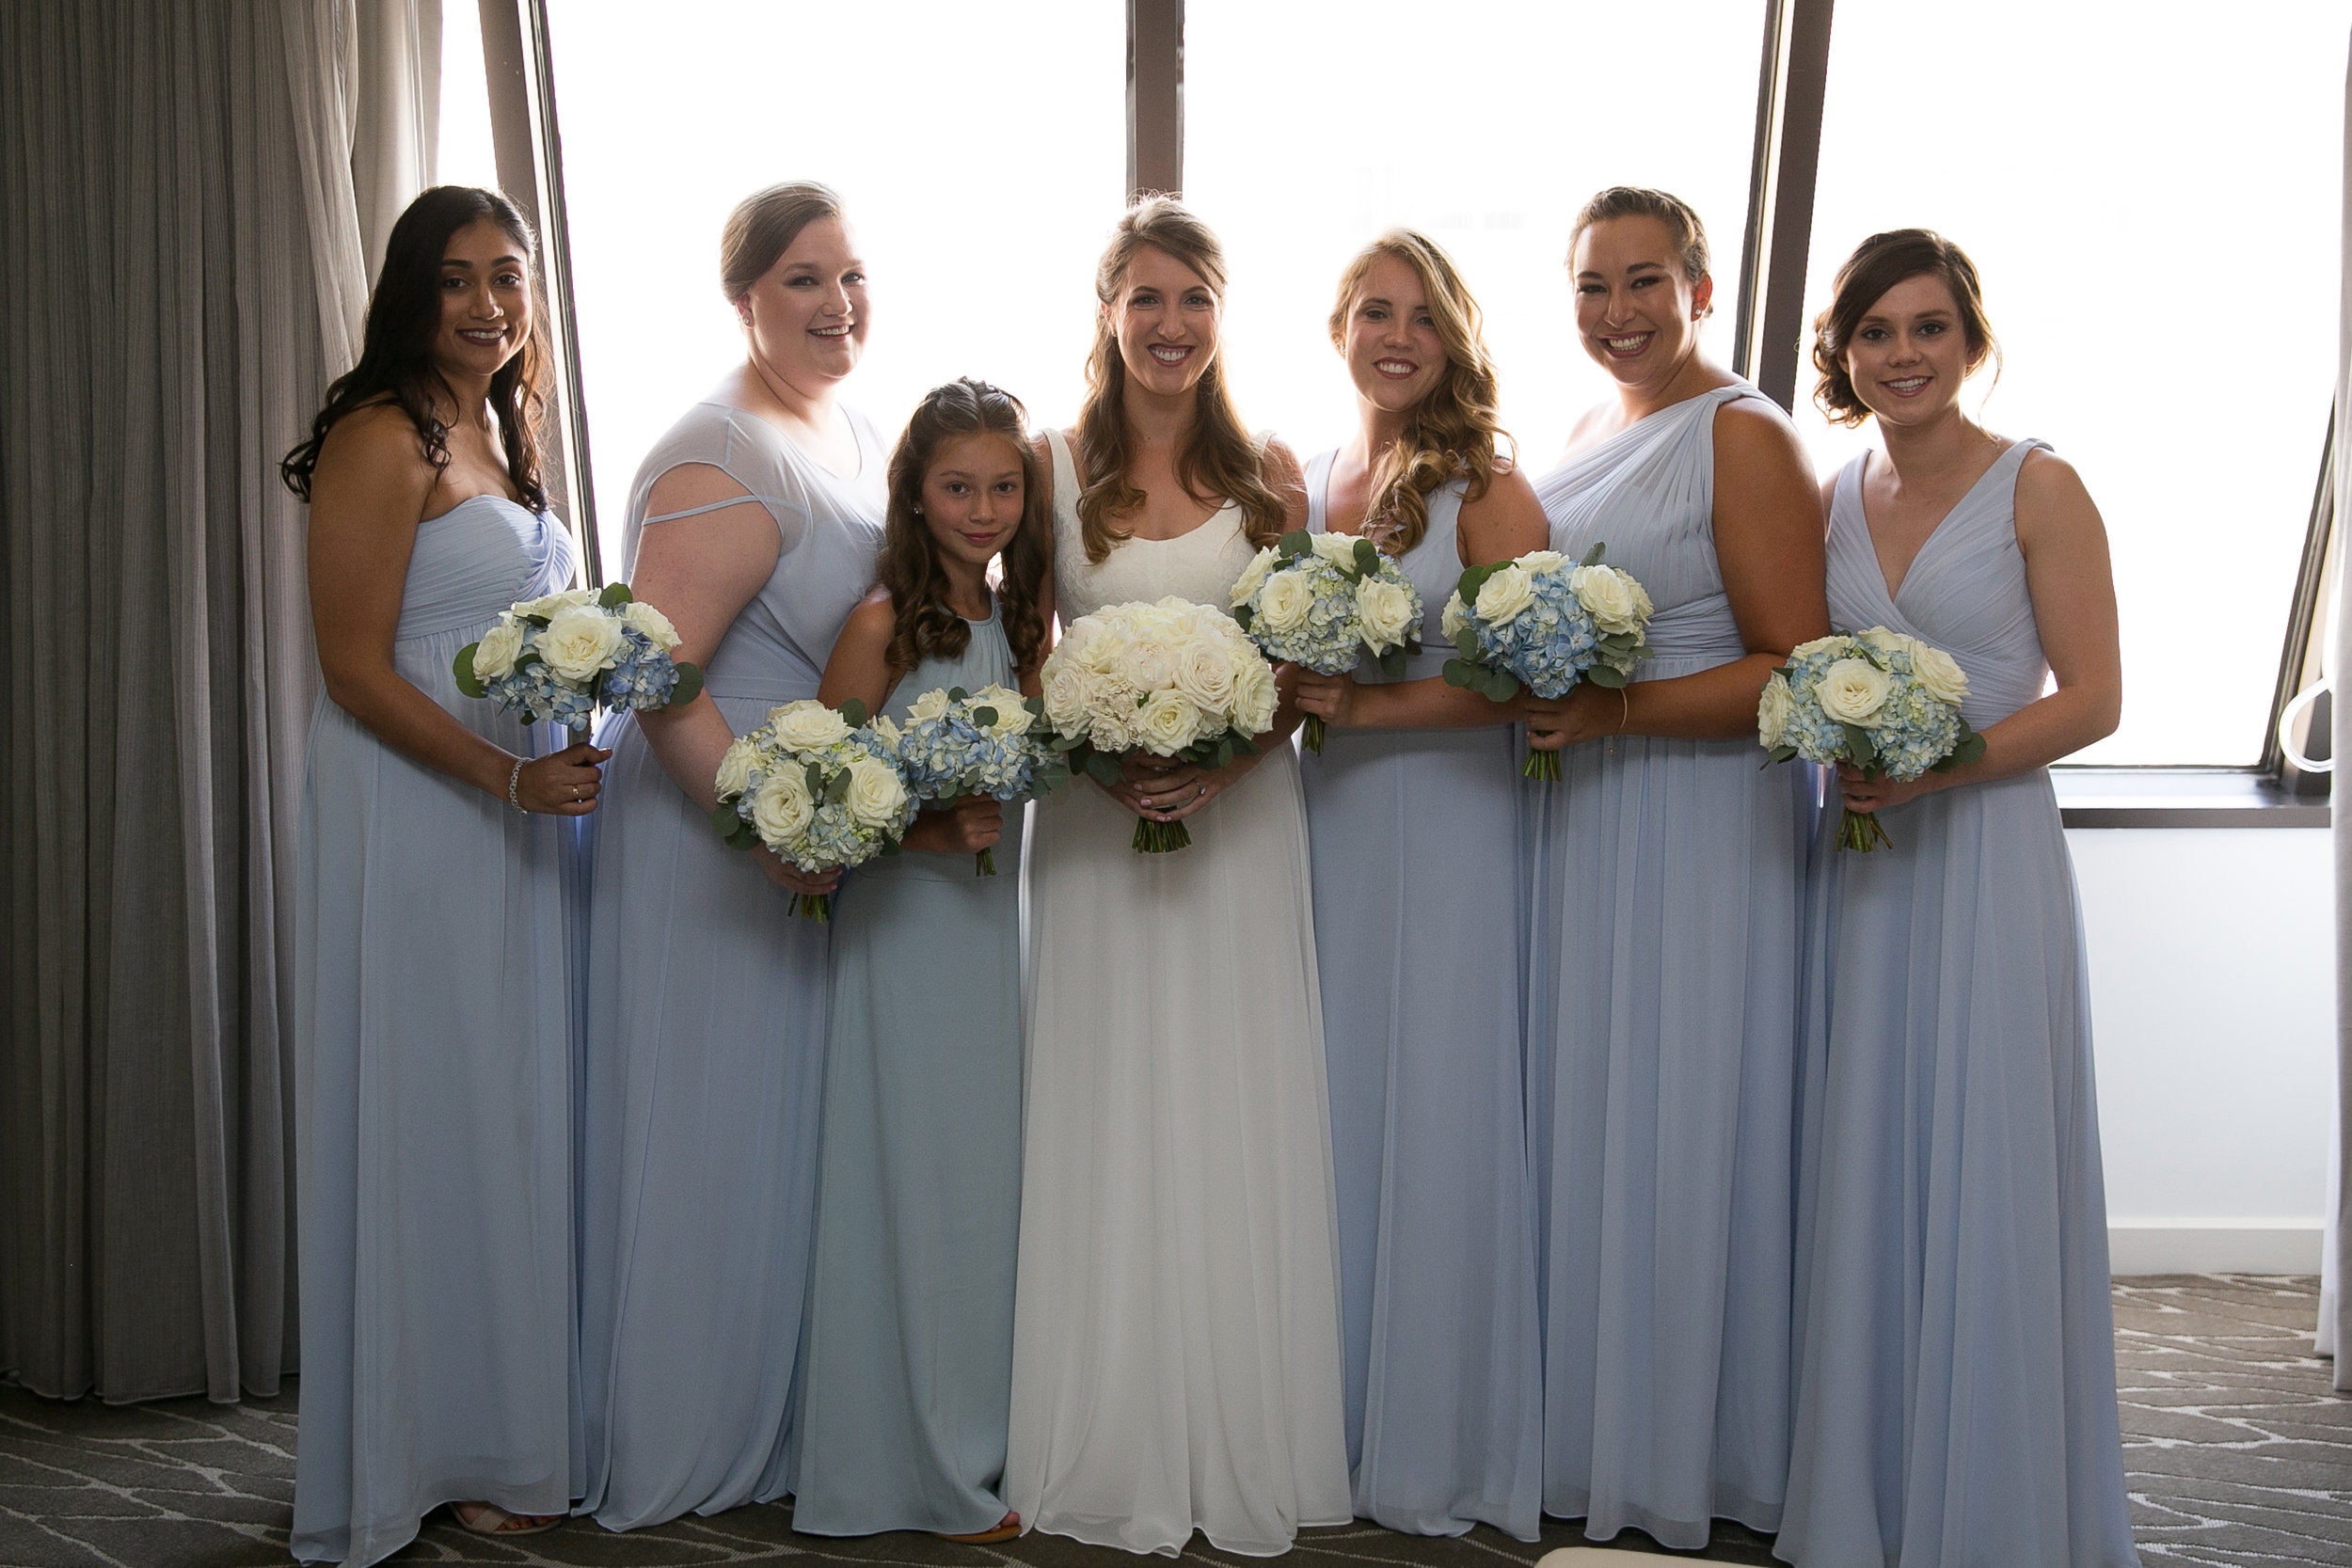 Atelier Ashley Flowers + Dusty Blue + Borrowed and Blue Photography + Congressional Country Club + DC wedding +  bridesmaids + round bouquets